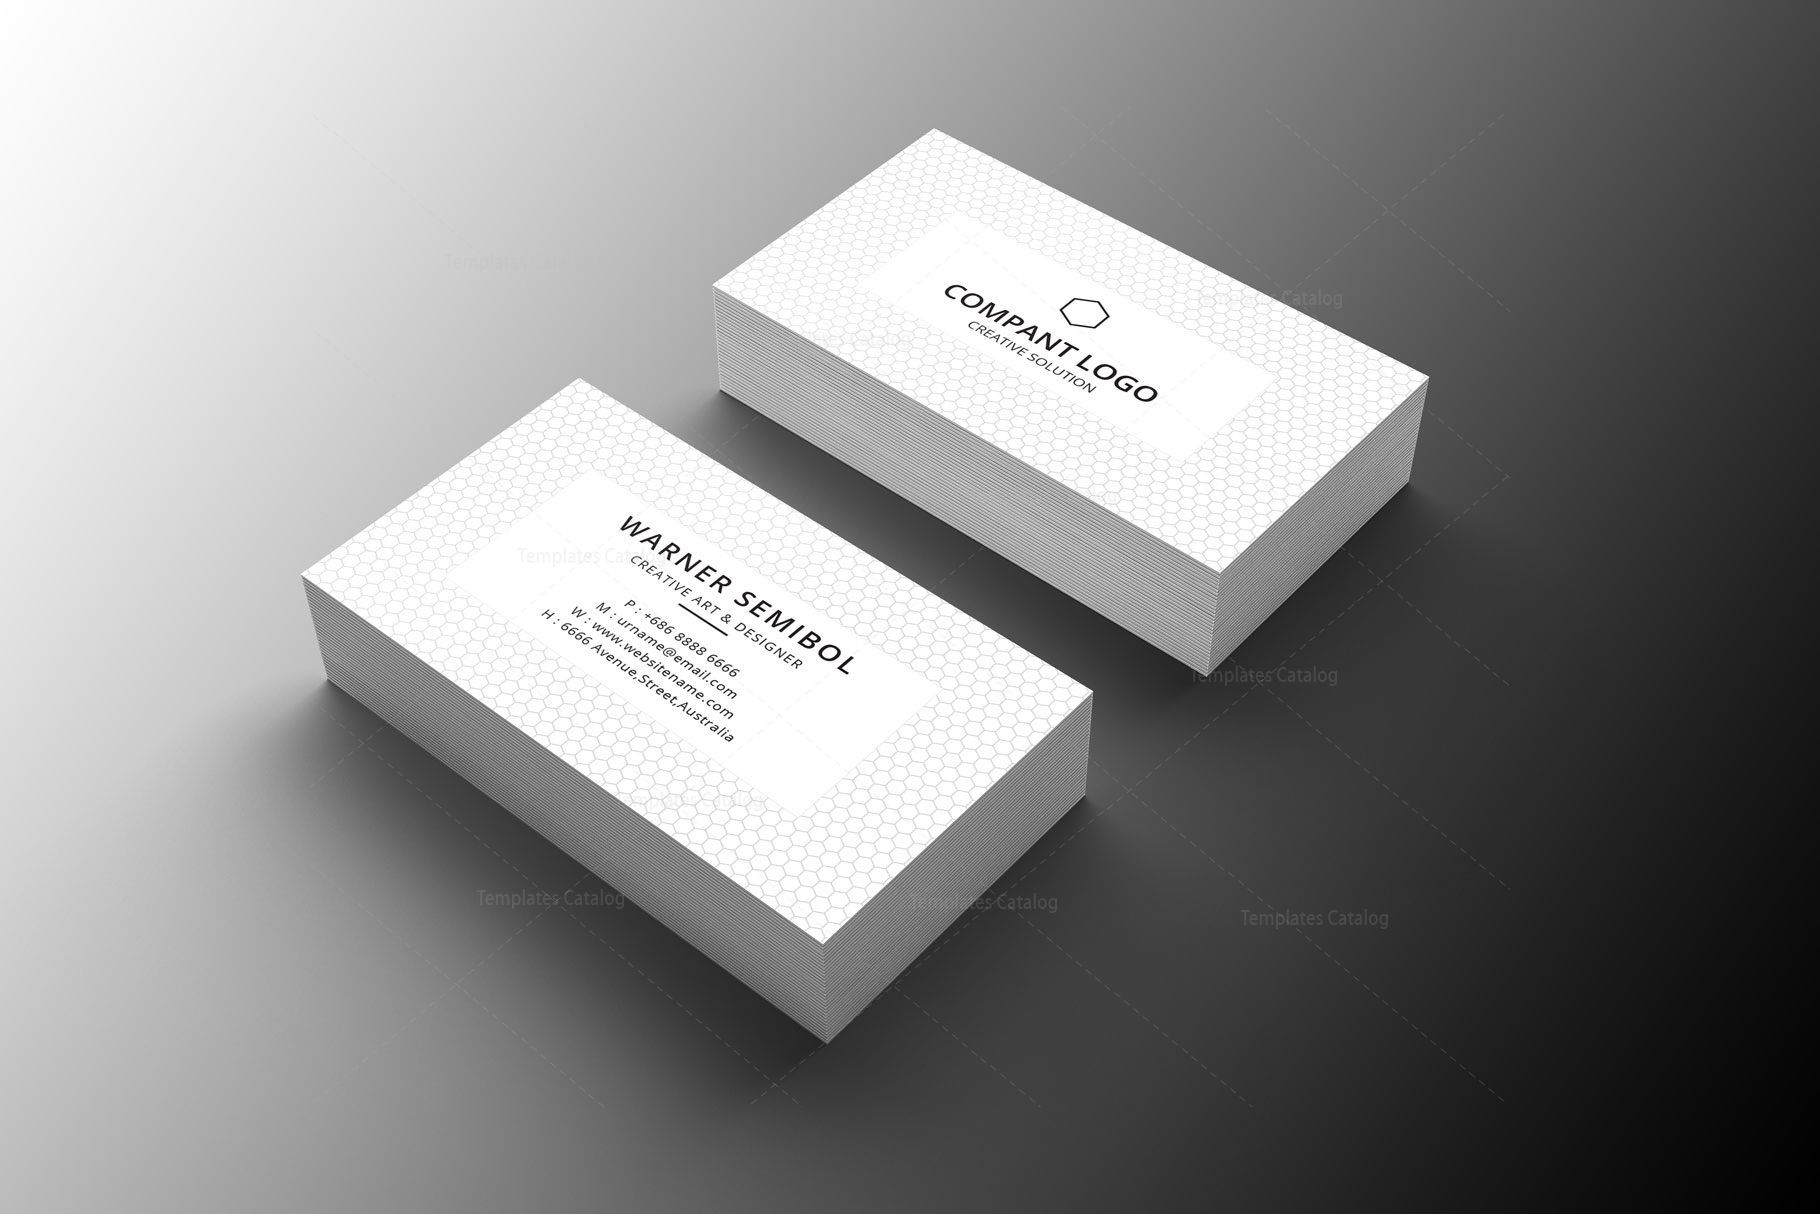 Minimal Consultant Business Card Design Graphic Templates Business Card Design Card Design Business Card Template Design